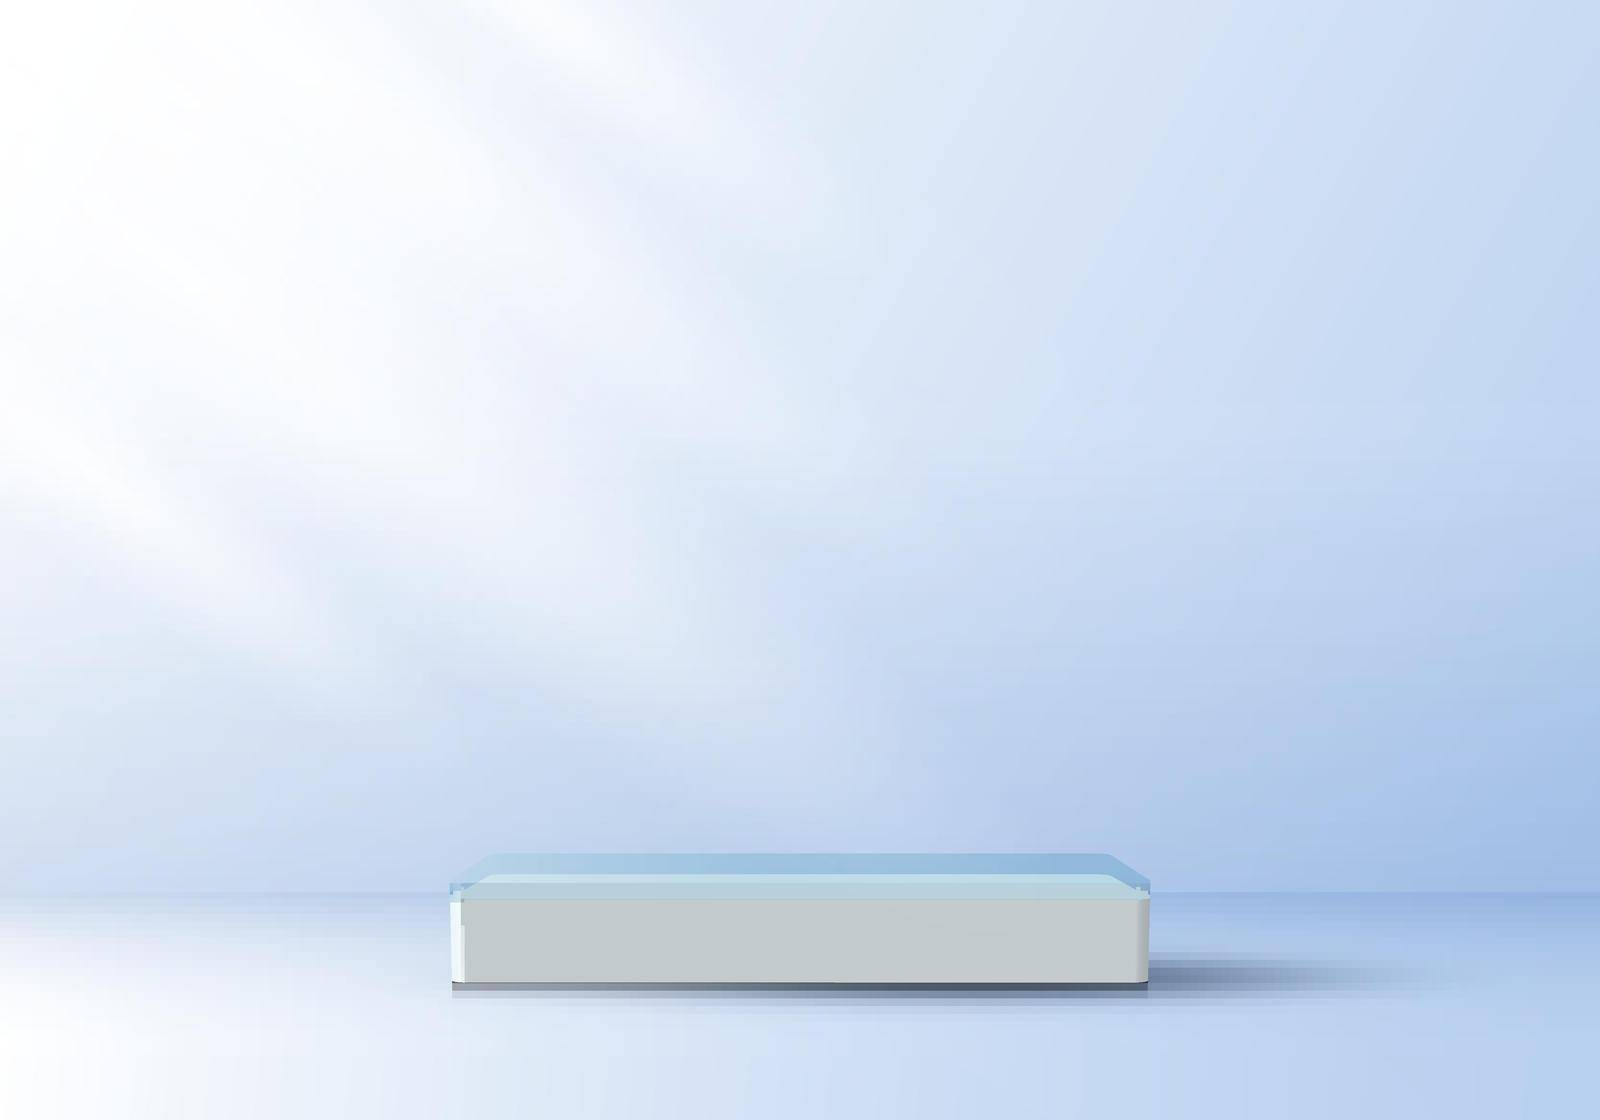 3D realistic elegant display white pedestal podium on top transparency on soft blue color studio room background with light. You can use for show cosmetic products, stage showcase. Vector illustration